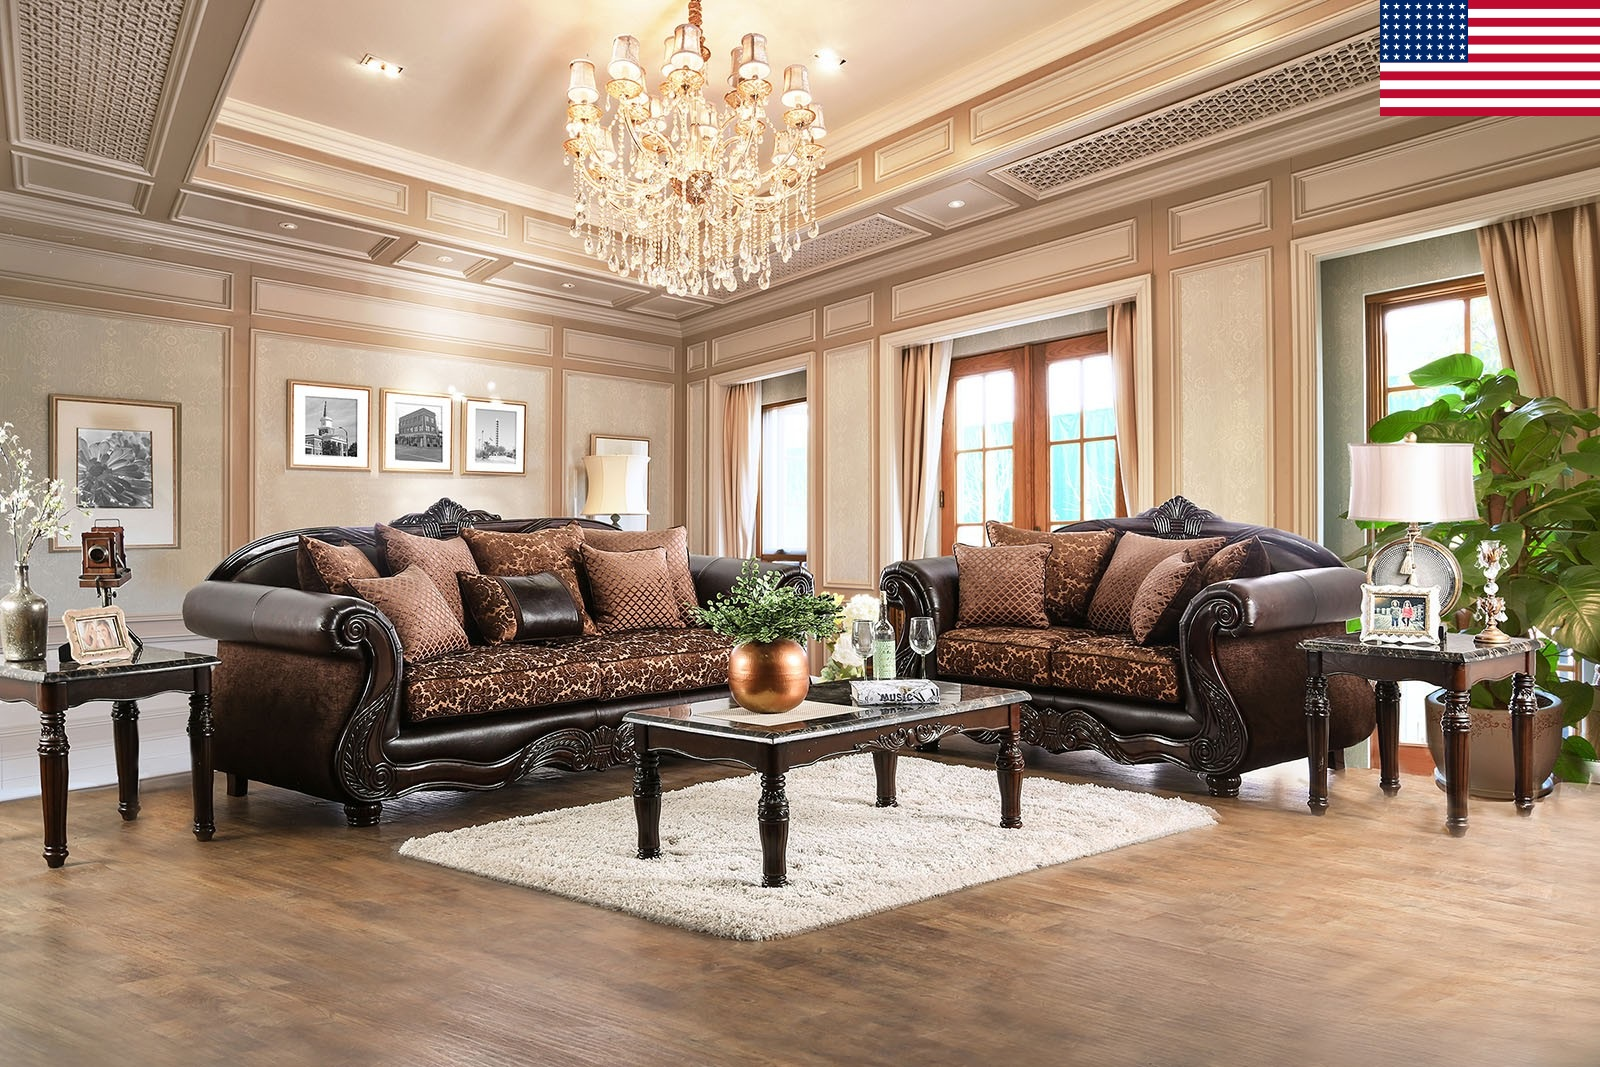 Ordinaire Majestic Royal 2pc Sofa Set Living Room Furniture Formal Traditional Sofa  Loveseat Pillows Brown Chenille Fabric